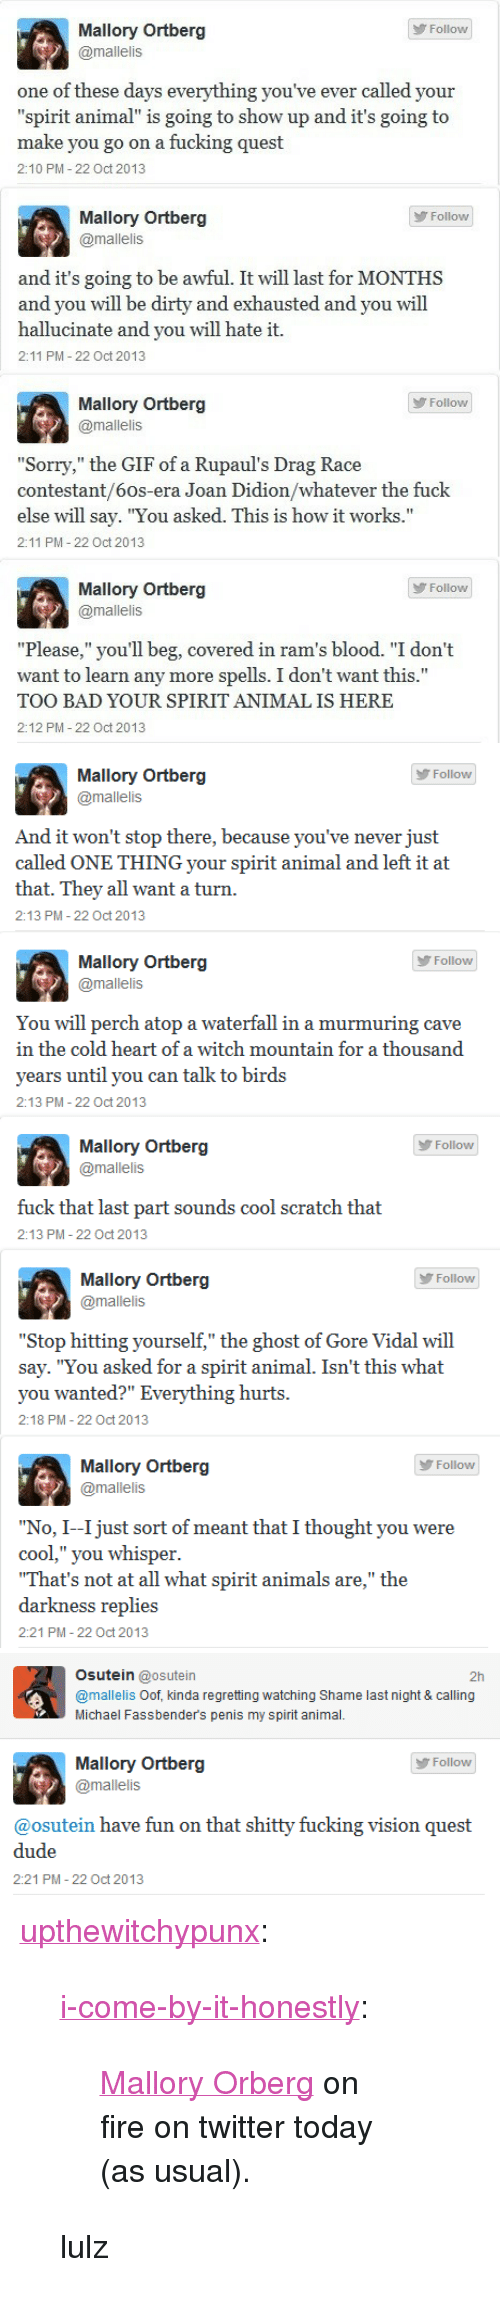 "Vidal: Mallory Ortberg  Follow  @mallelis  one of these days everything you've ever called your  ""spirit animal"" is going to show up and it's going to  make you go on a fucking quest  2:10 PM 22 Oct 2013  Mallory Ortberg  @mallelis  Follow  and it's going to be awful. It will last for MONTHS  and you will be d  hallucinate and you will hate it.  2:11 PM 22 Oct 2013  and exhausted and you will  Mallory Ortberg  @mallelis  Follow  ""Sorry,"" the GIF of a Rupaul's Drag Race  contestant/6os-era Joan Didion/whatever the fuck  else will say. ""You asked. This is how it works.""  2:11 PM 22 Oct 2013  Mallory Ortberg  Follow  @mallelis  ""Please,"" you'll beg, covered in ram's blood. ""I don't  want to learn any more spells. I don't want this.""  TOO BAD YOUR SPIRIT ANIMAL IS HERE  2:12 PM- 22 Oct 2013   Mallory Ortberg  Follow  @mallelis  And it won't stop there, because you've never just  called ONE THING your spirit animal and left it at  that.They all want a turn  2:13 PM - 22 Oct 2013  Mallory Ortberg  У Follow  @mallelis  You will perch atop a waterfall in a murmuring cave  in the cold heart of a witch mountain for a thousand  vears until you can talk to birds  2:13 PM - 22 Oct 2013  Mallory Ortberg  @mallelis  Follow  fuck that last part sounds cool scratch that  2:13 PM - 22 Oct 2013  Mallory Ortberg  @mallelis  Follow  ""Stop hitting yourself,"" the ghost of Gore Vidal will  say. ""You asked for a spirit animal. Isn't this what  you wanted?"" Everything hurts  2:18 PM - 22 Oct 2013  Mallory Ortberg  @mallelis  У Follow  ""No, I--I just sort of meant that I thought you were  cool,"" you whisper  That's not at all what spirit animals are,"" the  darkness replie  2:21 PM - 22 Oct 2013   Osutein @osutein  @mallelis Oof, kinda regretting watching Shame last night & calling  Michael Fassbender's penis my spirit animal.  2h  Follow  @mallelis  ibait躙bUU y fue: kj tng g沁萄1(劜(guesi  @osutein h a wes fum gn  dude  2:21 PM -22 Oct 2013 <p><a href=""http://upthewitchypunx.tumblr.com/post/64877500126/i-come-by-it-honestly-mallory-orberg-on-fire-on"" class=""tumblr_blog"">upthewitchypunx</a>:</p> <blockquote> <p><a class=""tumblr_blog"" href=""http://i-come-by-it-honestly.tumblr.com/post/64754525123/mallory-orberg-on-fire-on-twitter-today-as"">i-come-by-it-honestly</a>:</p> <blockquote> <p><a href=""https://twitter.com/mallelis"">Mallory Orberg</a> on fire on twitter today (as usual).</p> </blockquote> <p>lulz</p> </blockquote>"